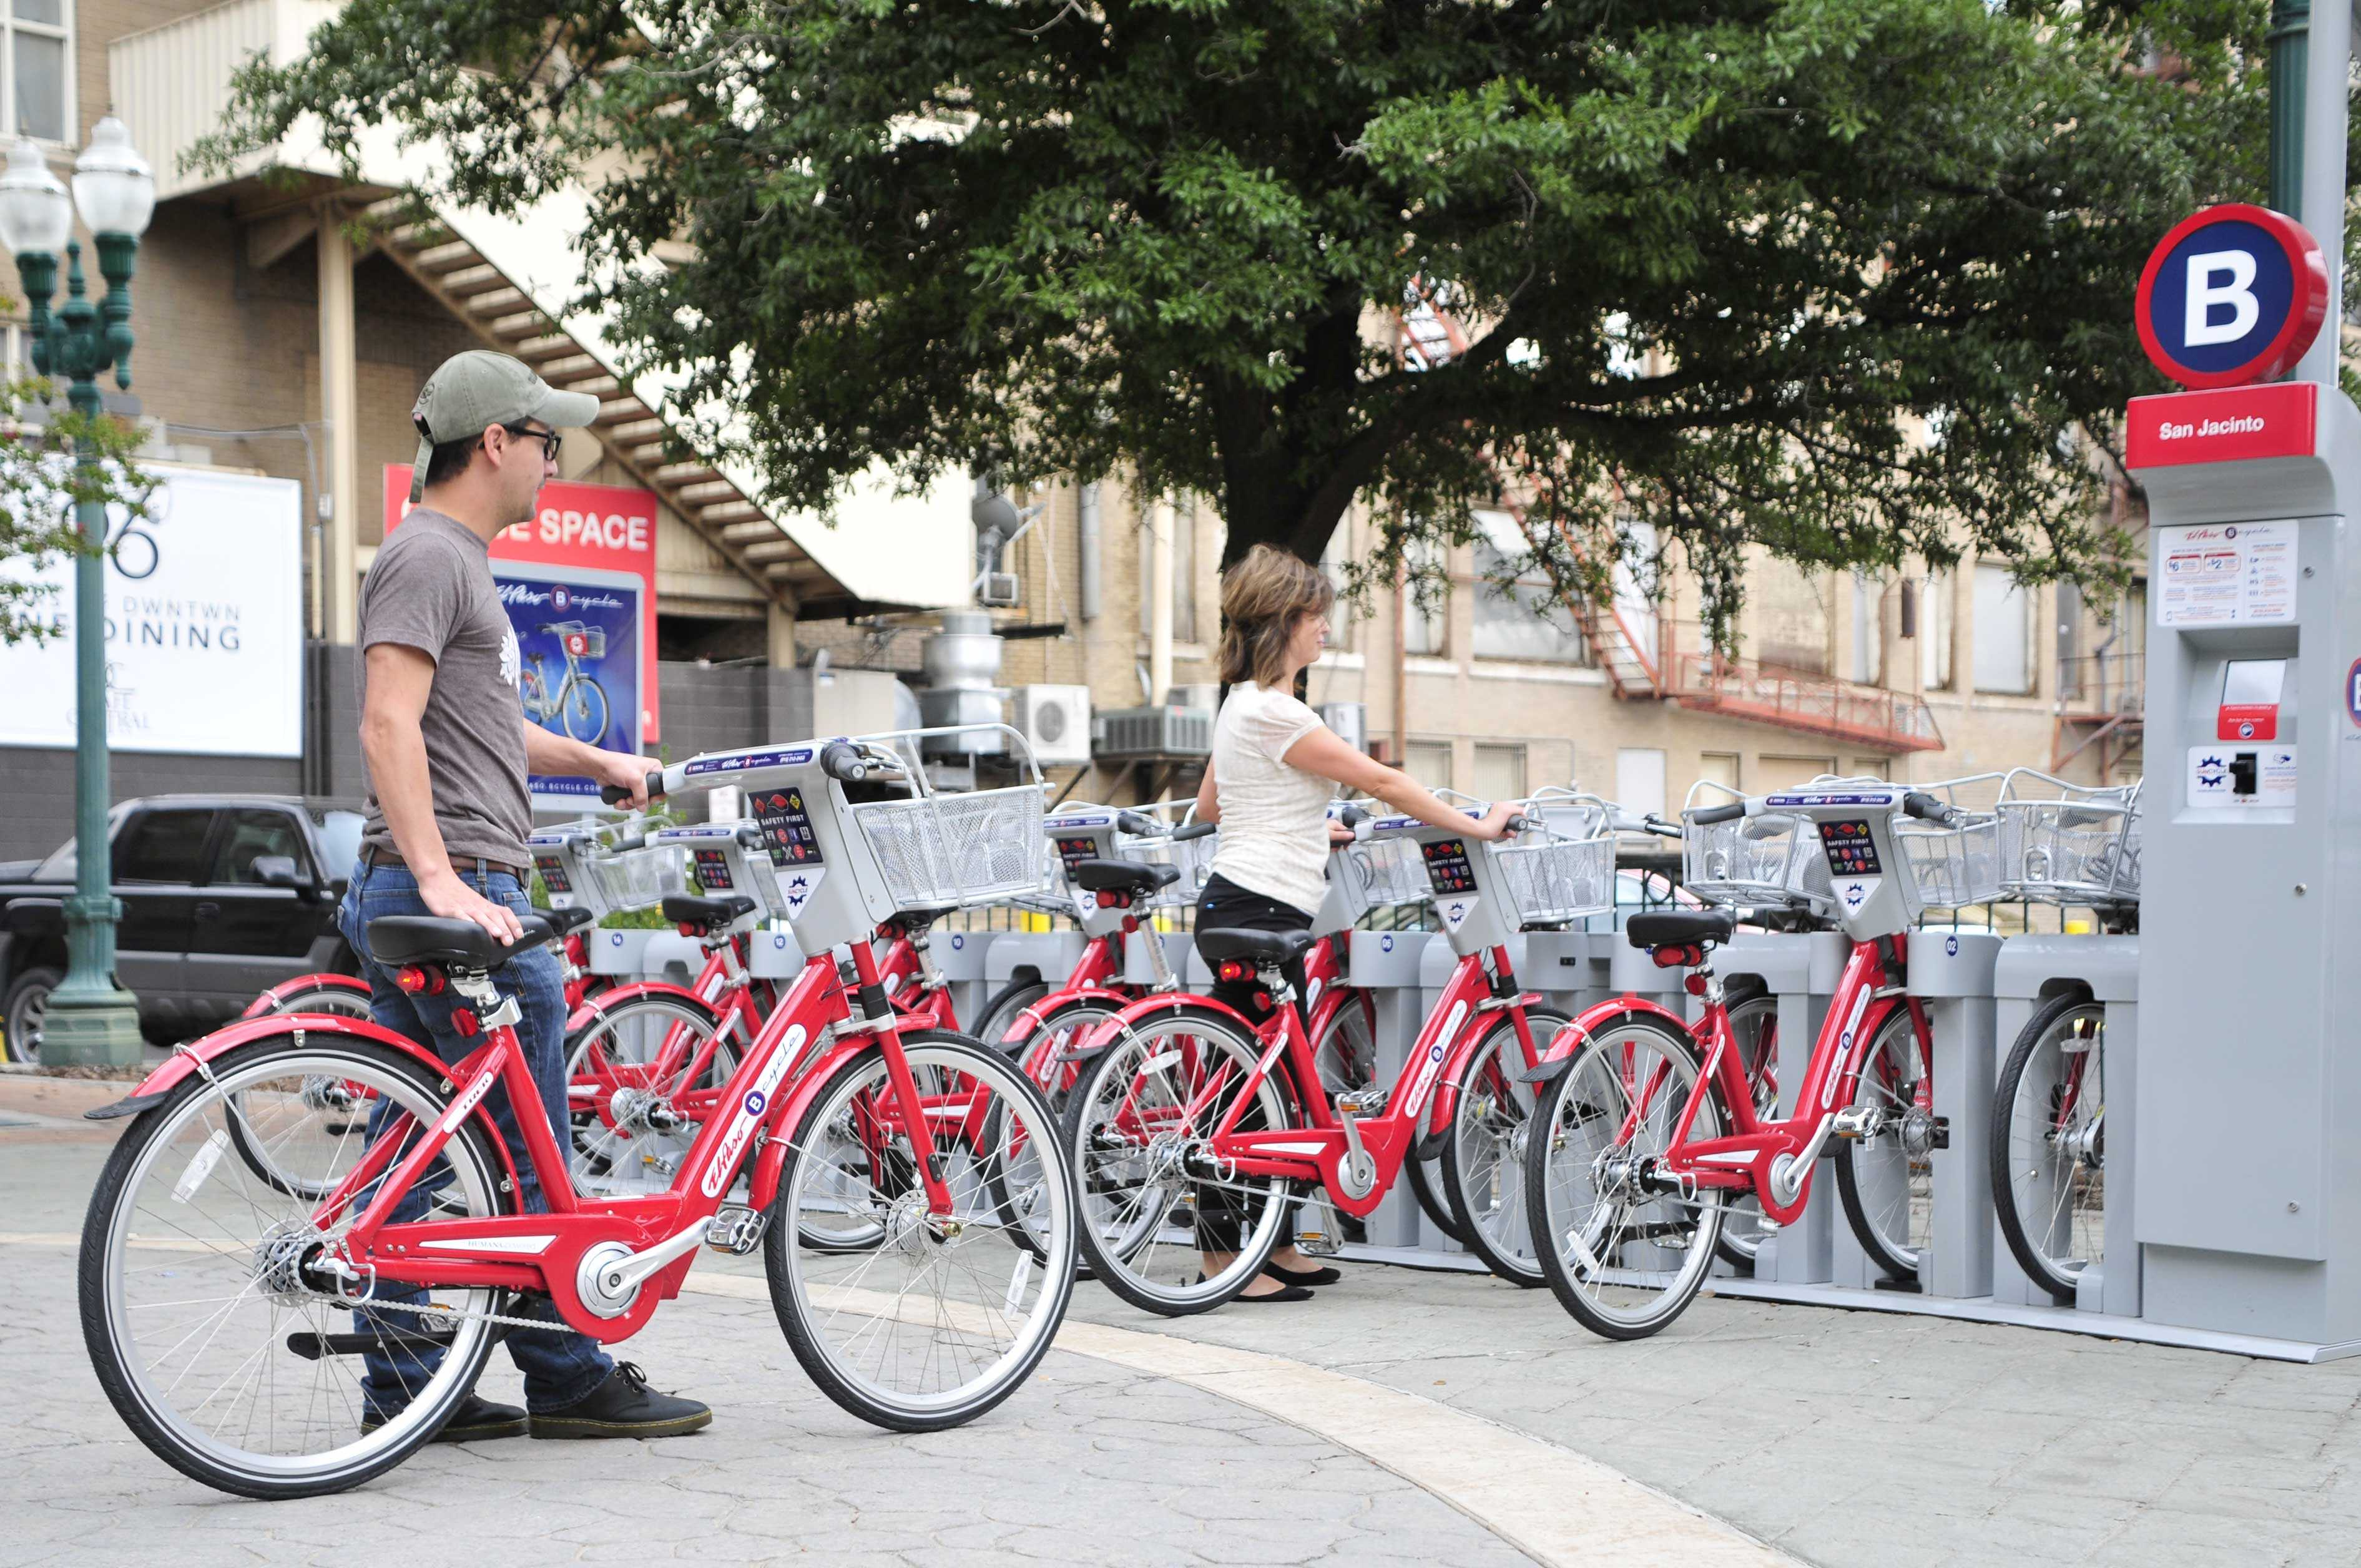 Pioneer Plaza is one of eight locations users can rent a bike from SunCycle Bike Share Program.